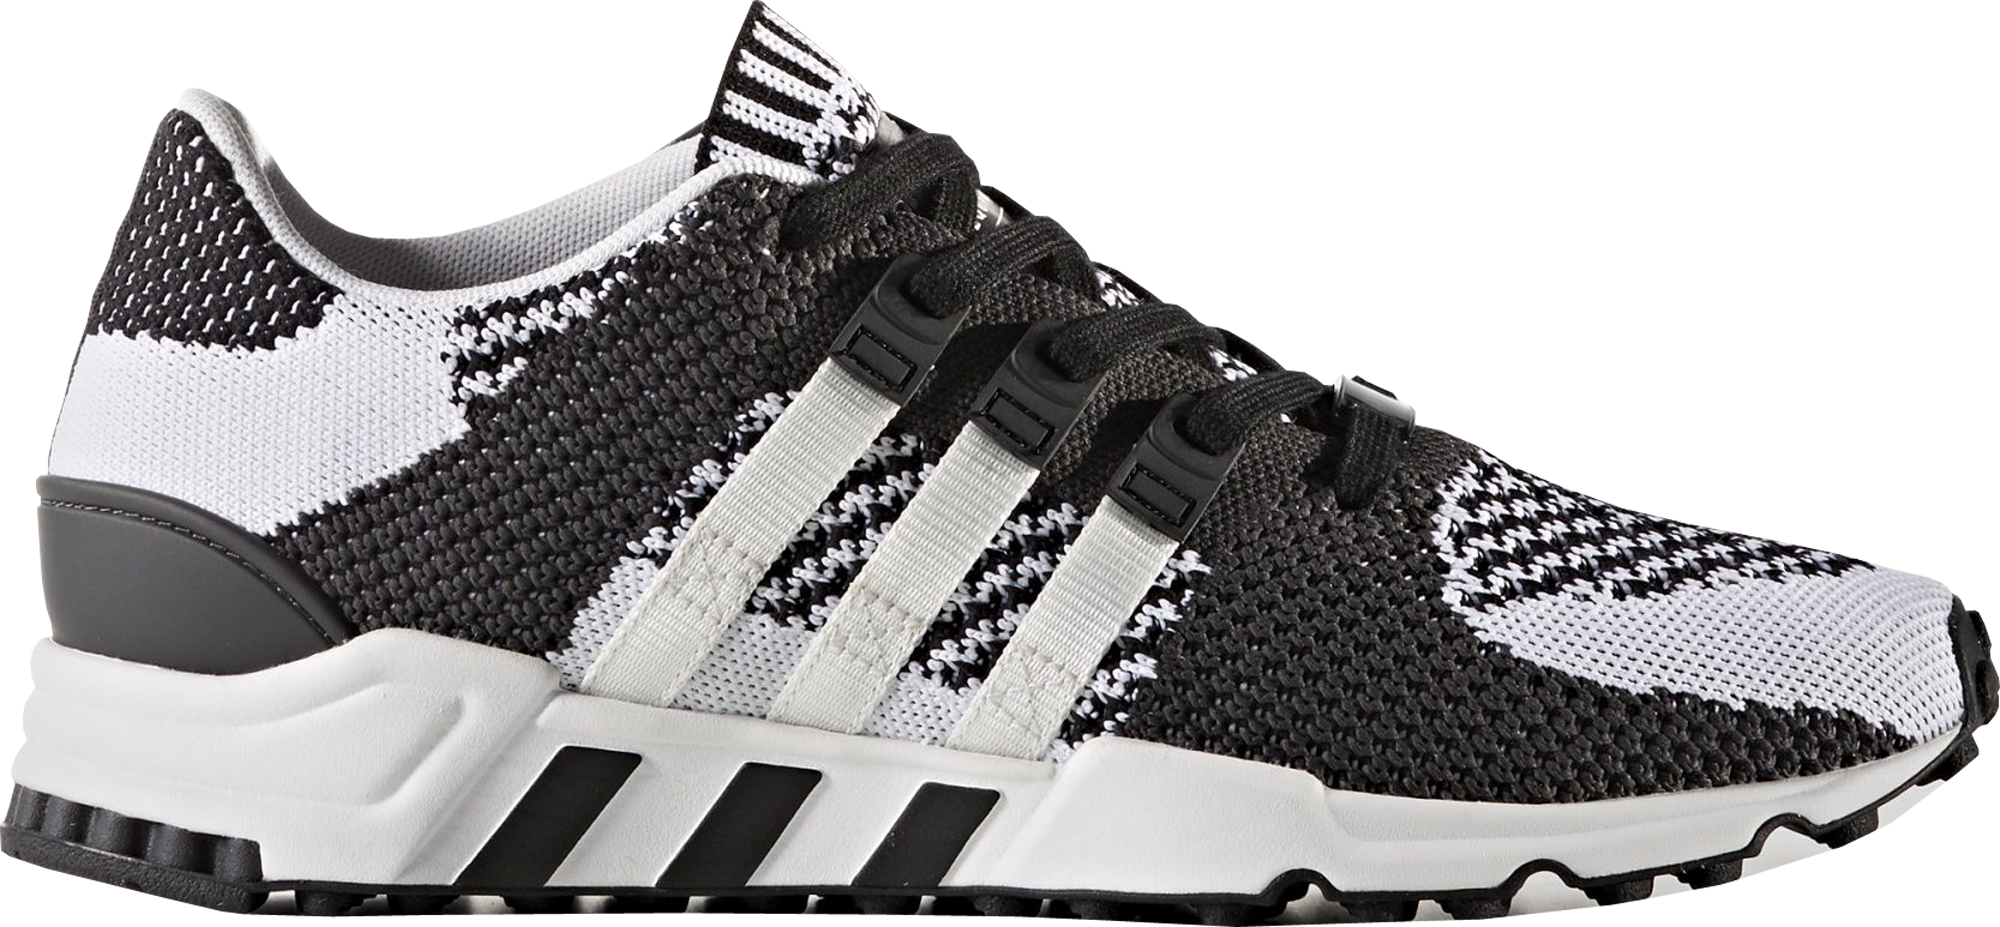 Adidas Rf Stockx Primeknit White Eqt Black News Support 9IH2ED